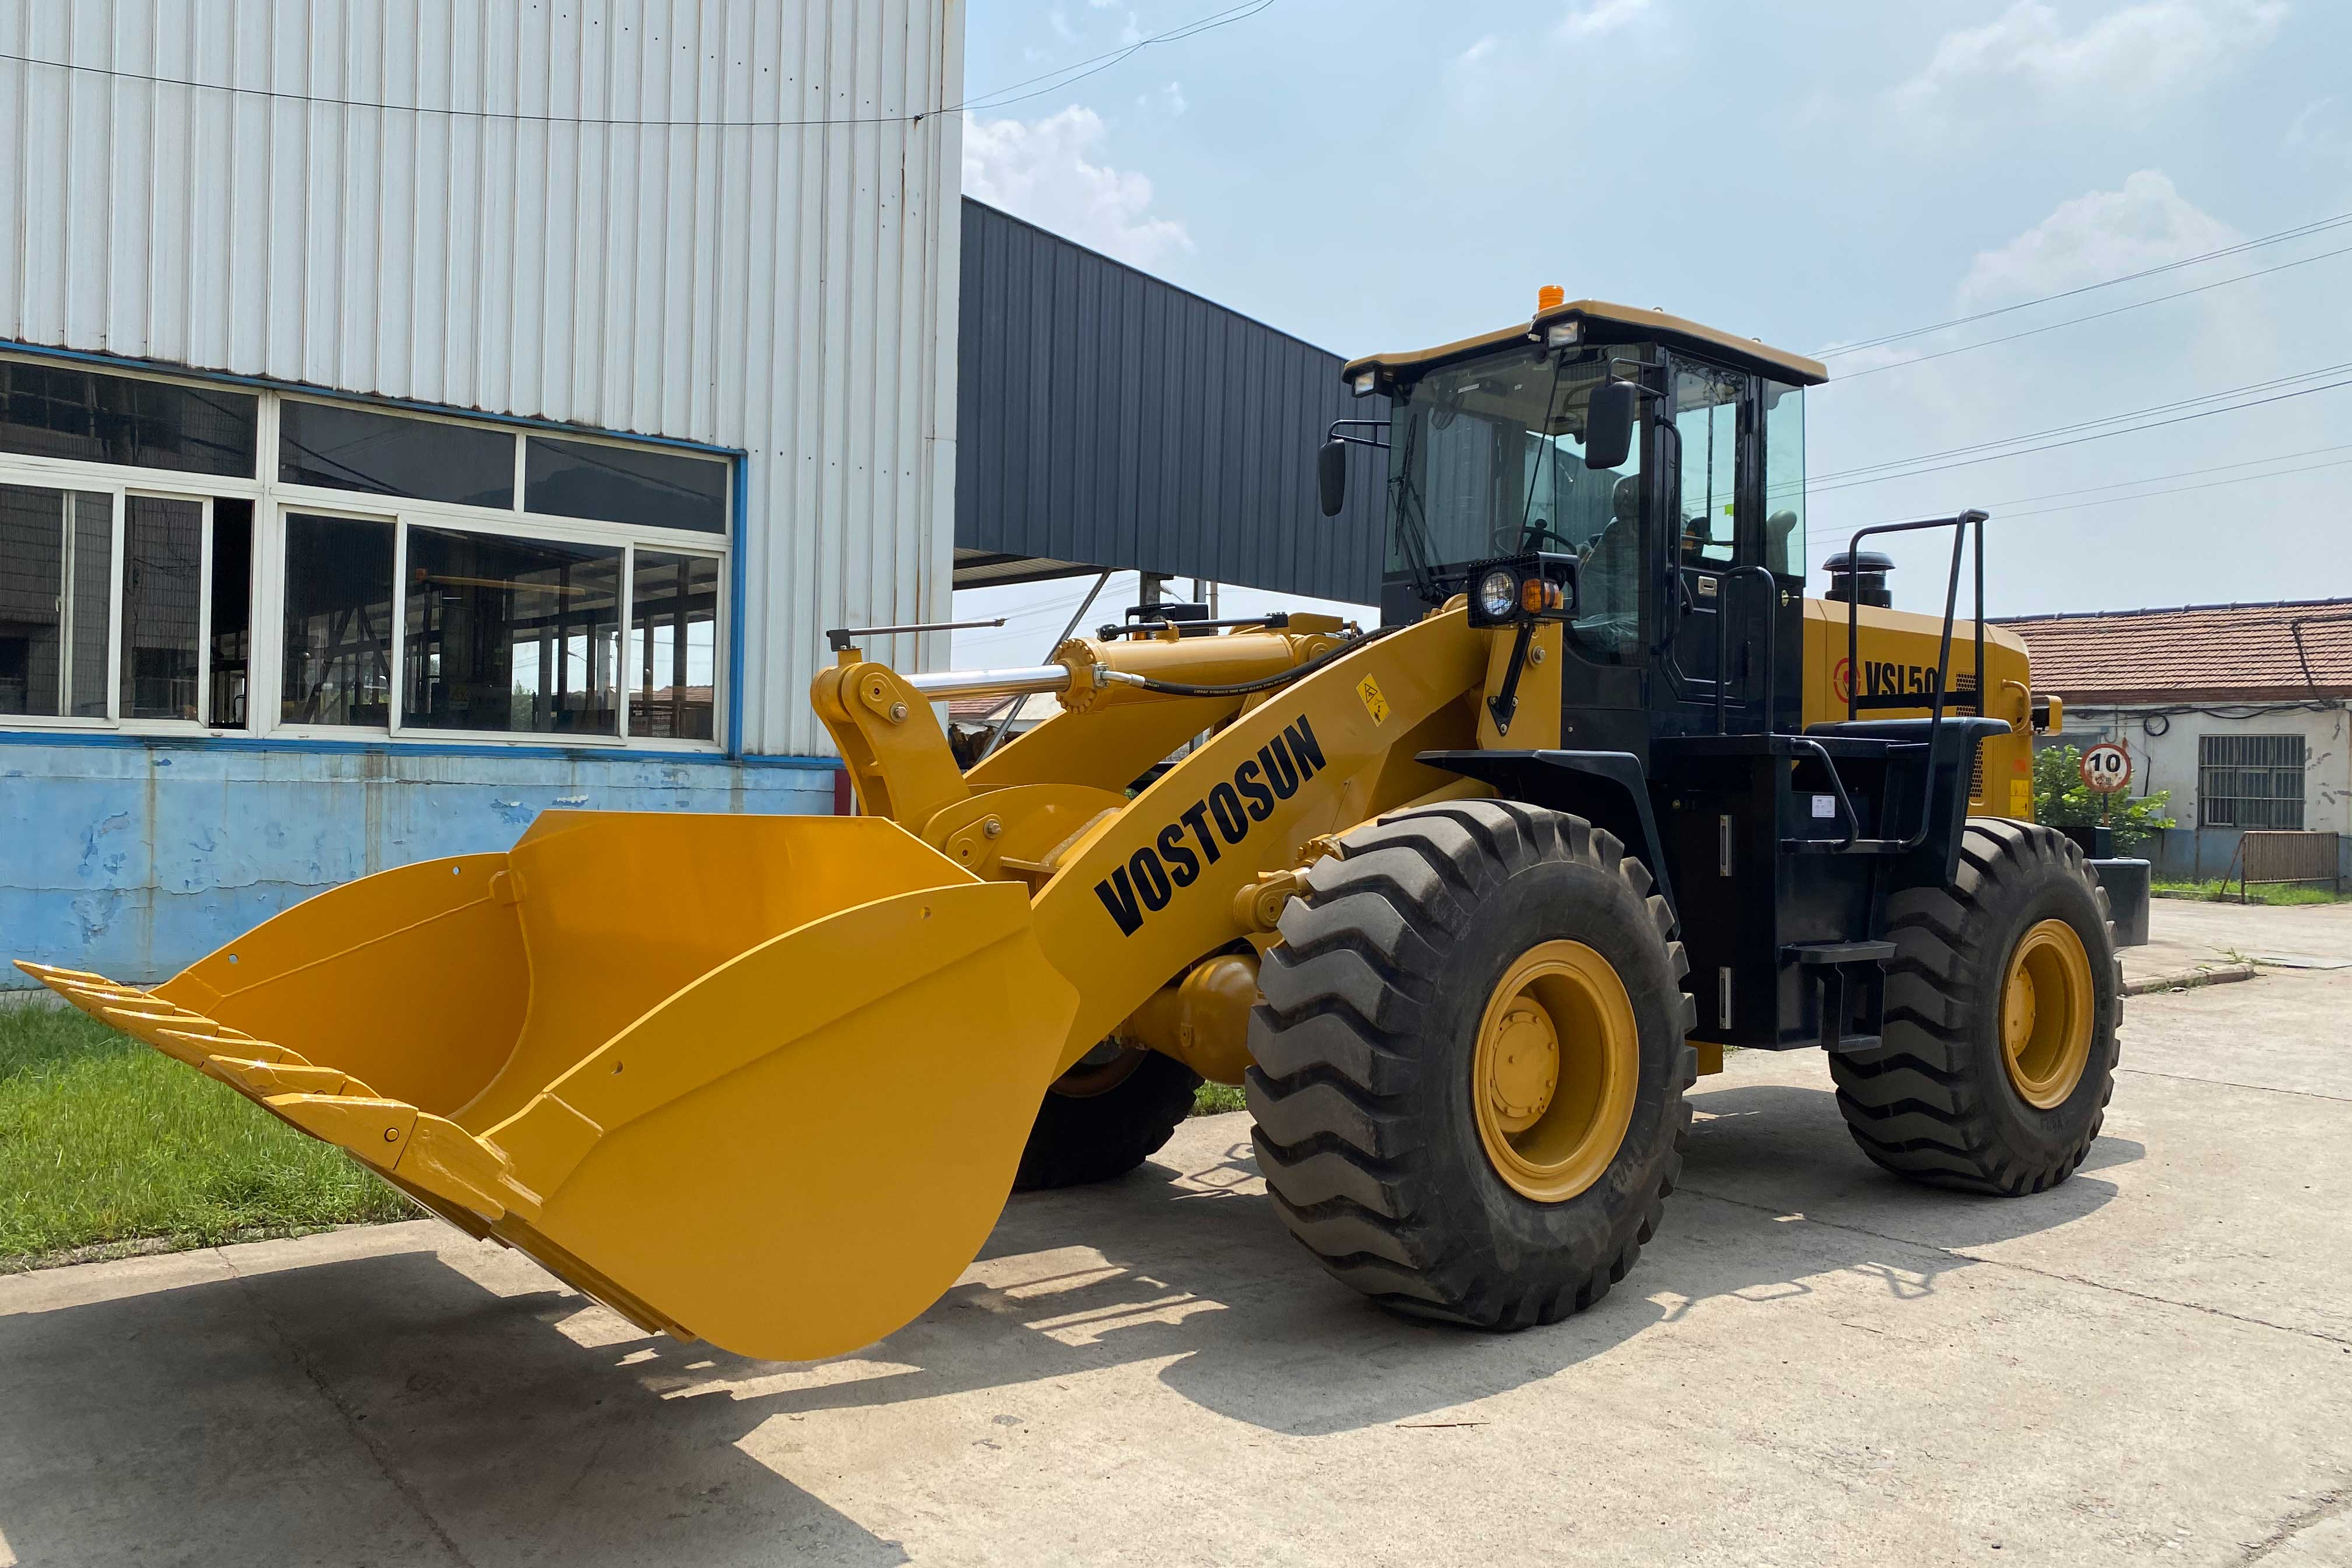 On August 28, 2020, VOSTOSUN's wheel loader was tested ,then packed and transported to Ukraine.